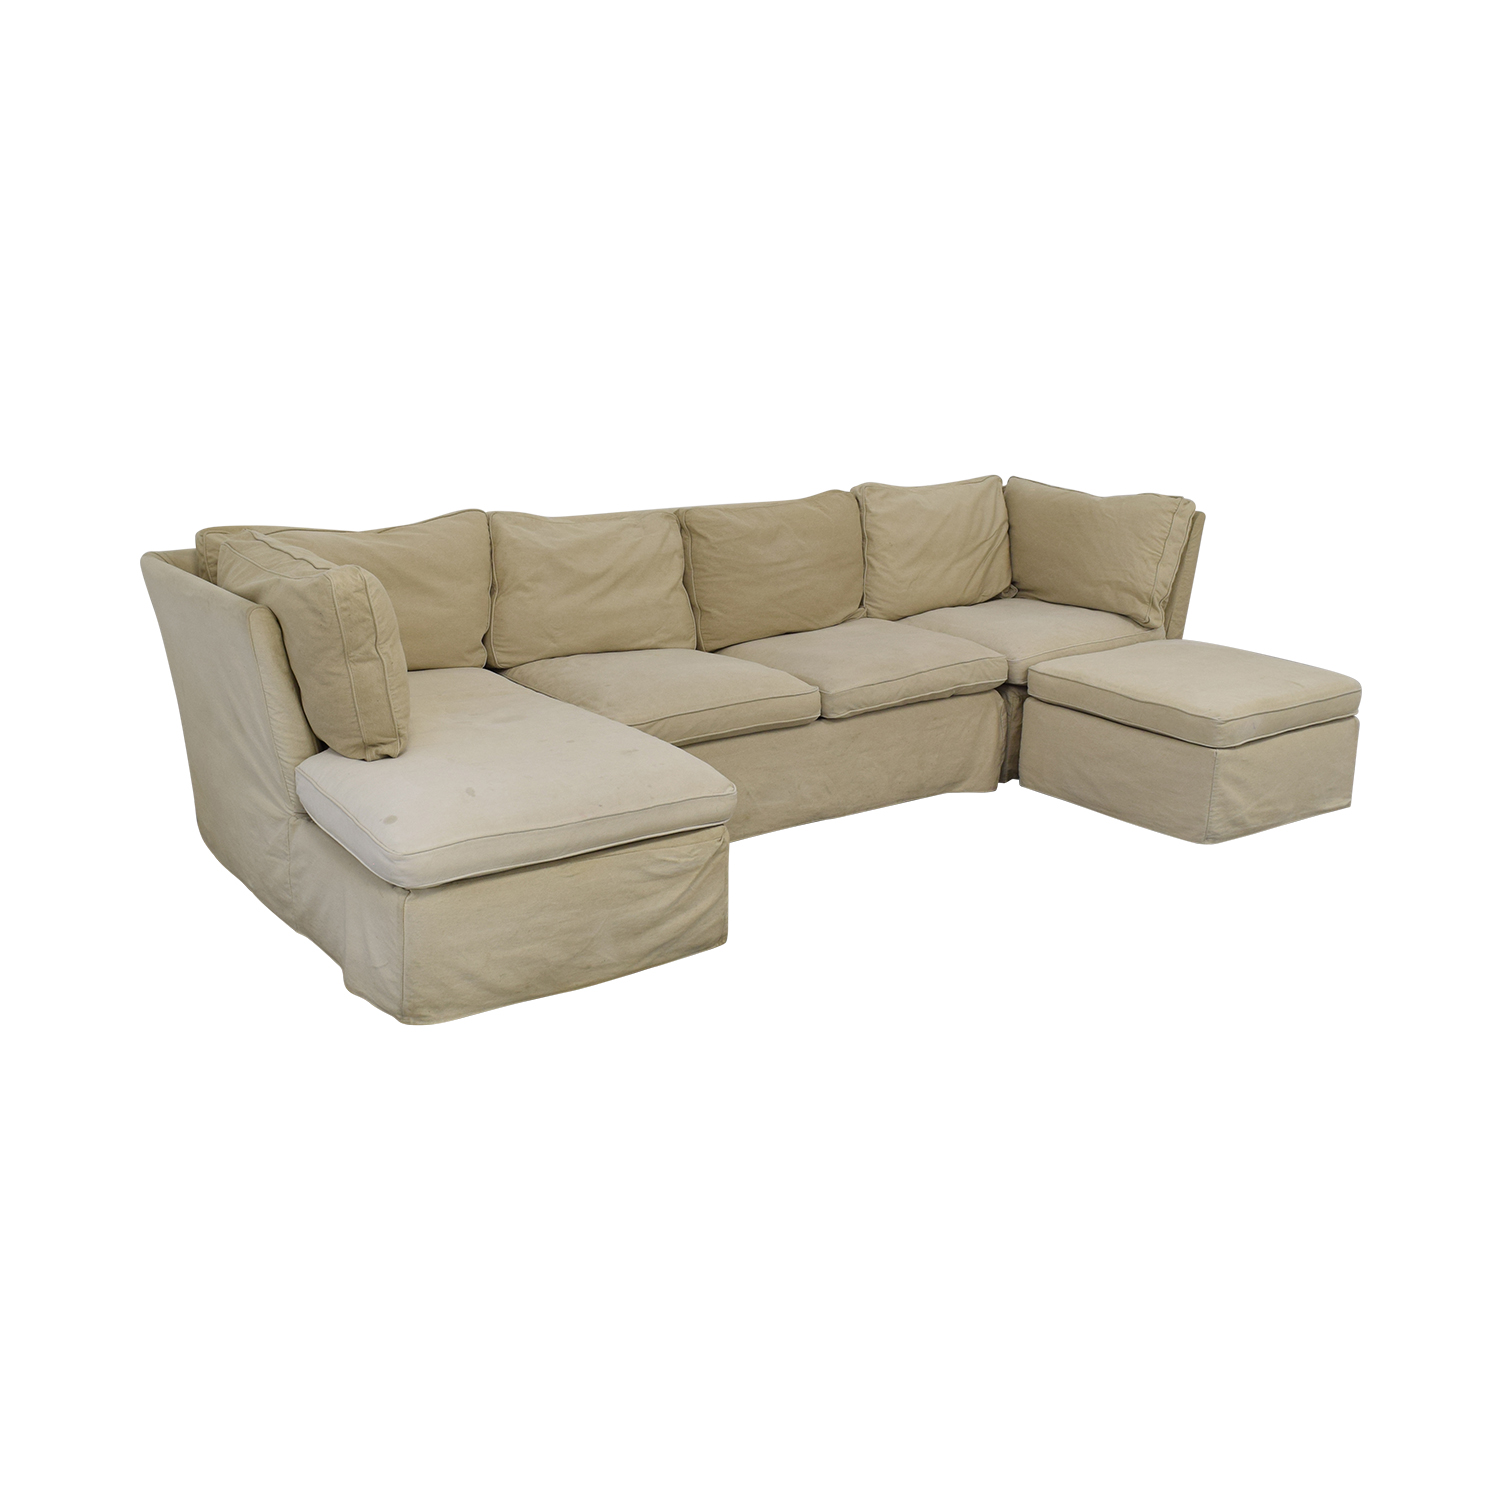 ABC Carpet & Home ABC Carpet & Home Sectional with Ottoman coupon